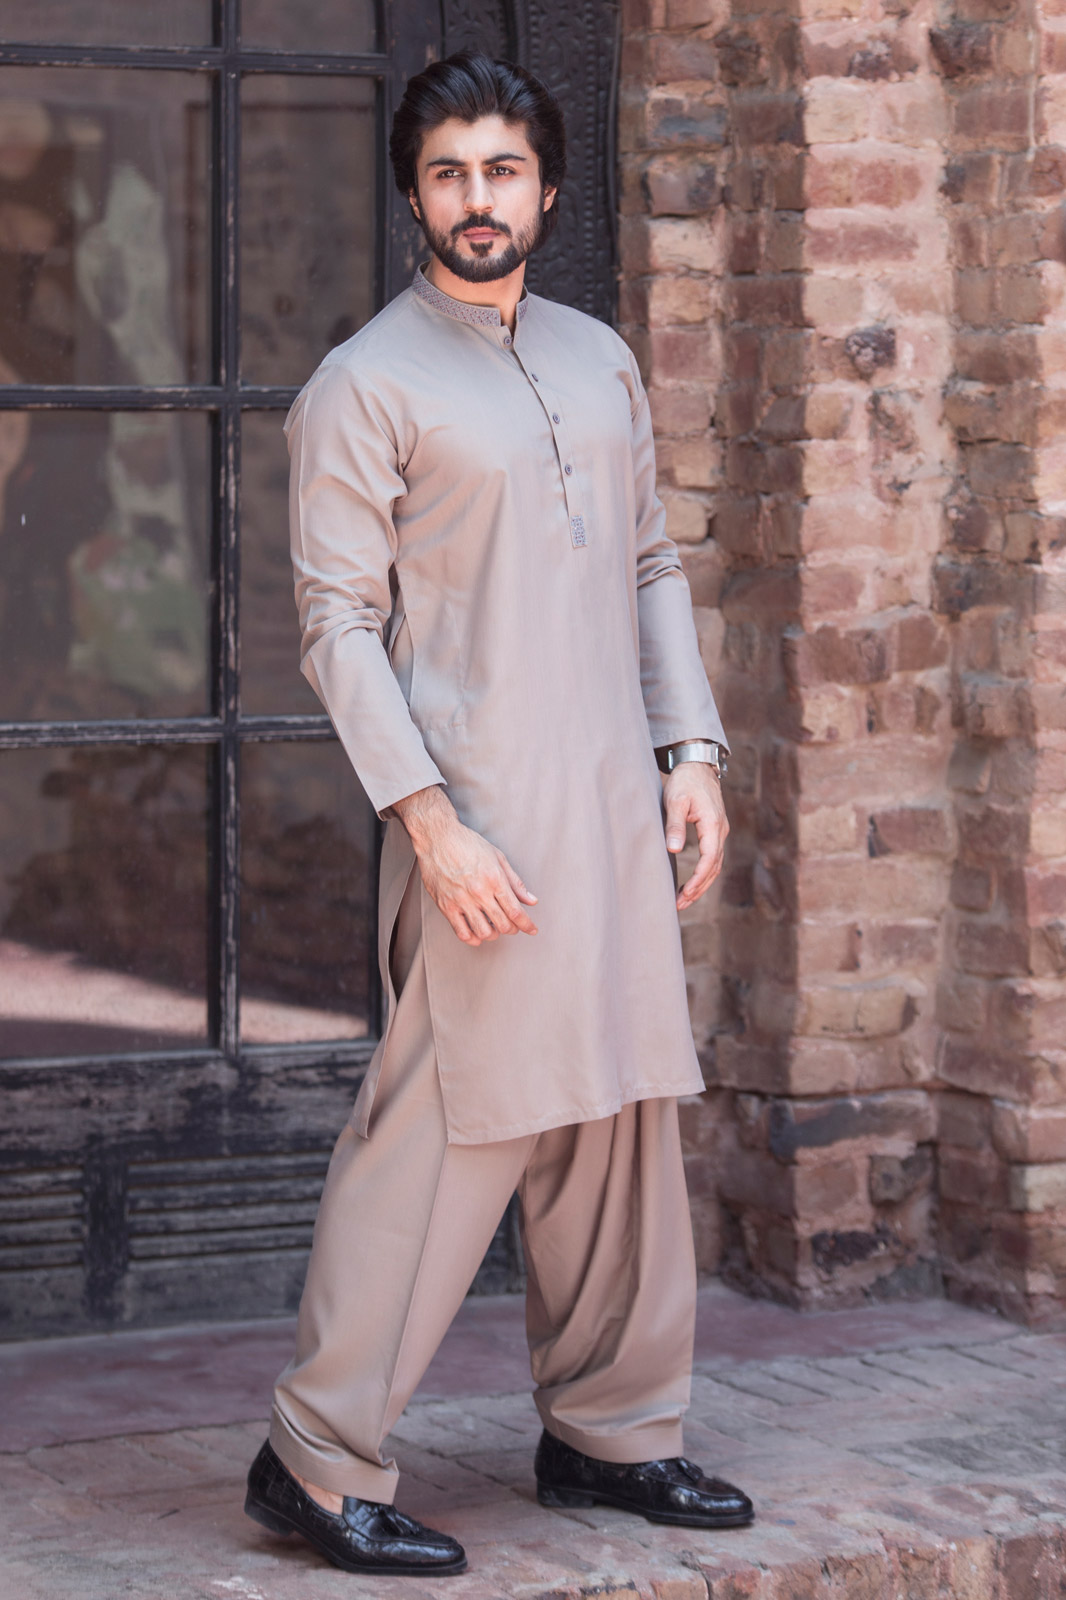 bonanza single guys Bonanza garments have been launched its latest men kurta shalwar or kameez shalwar collection 2015 for the most anticipated religious event of eid on the day of eid, every single men should have to wear new stylish shalwar kameez set or kurta shalwar because this is our traditional values.